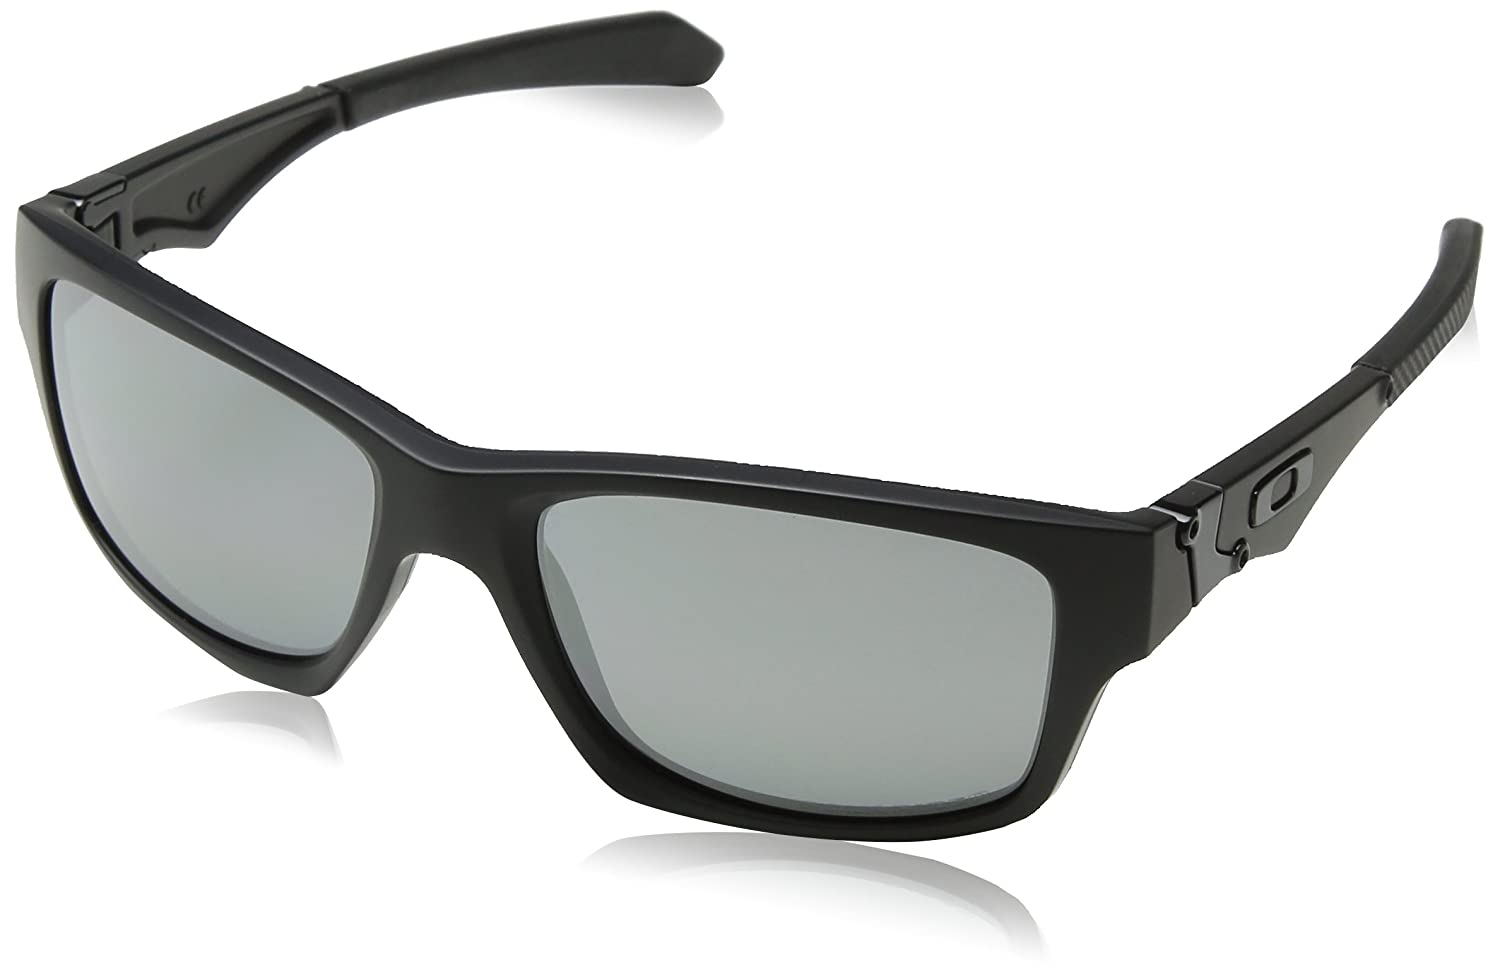 7d74dd5d3b Amazon.com  Oakley Jupiter Squared Men s Polarized Lifestyle Sports  Sunglasses Eyewear - Matte Black Black Iridium One Size Fits All  Oakley   Clothing